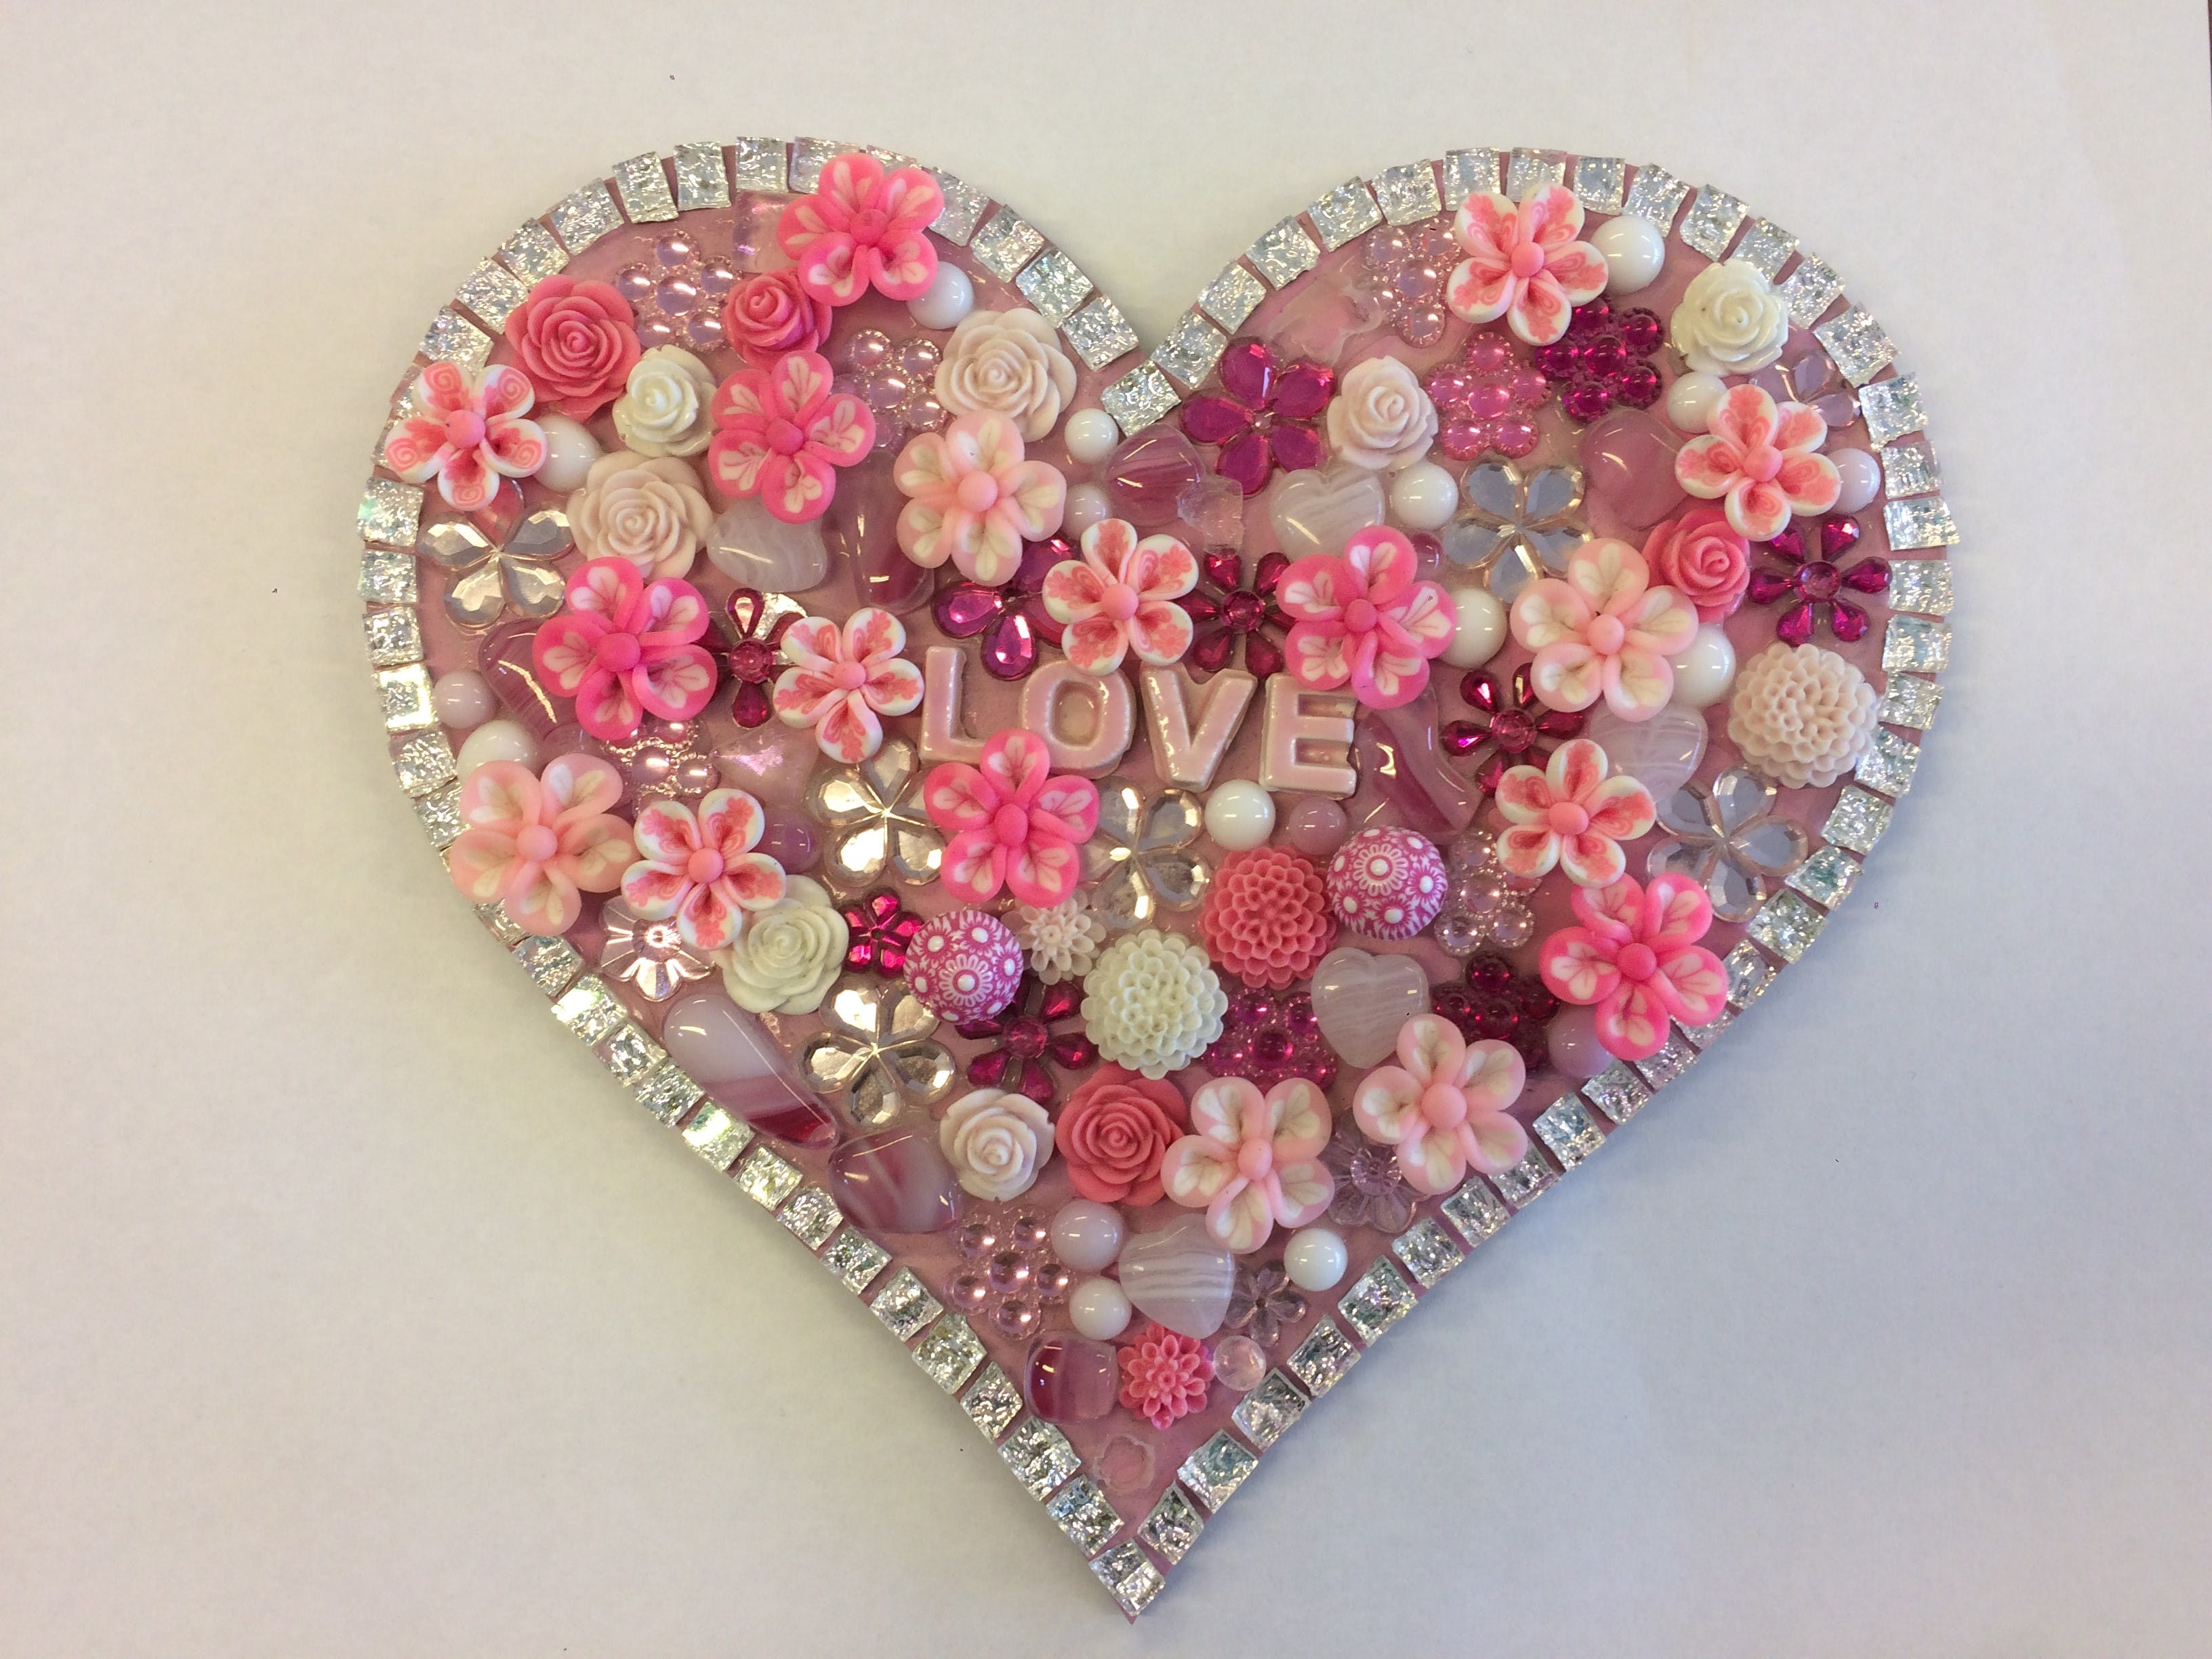 Flowers and Bling Mosaic Class for Kids - Pubs Perth